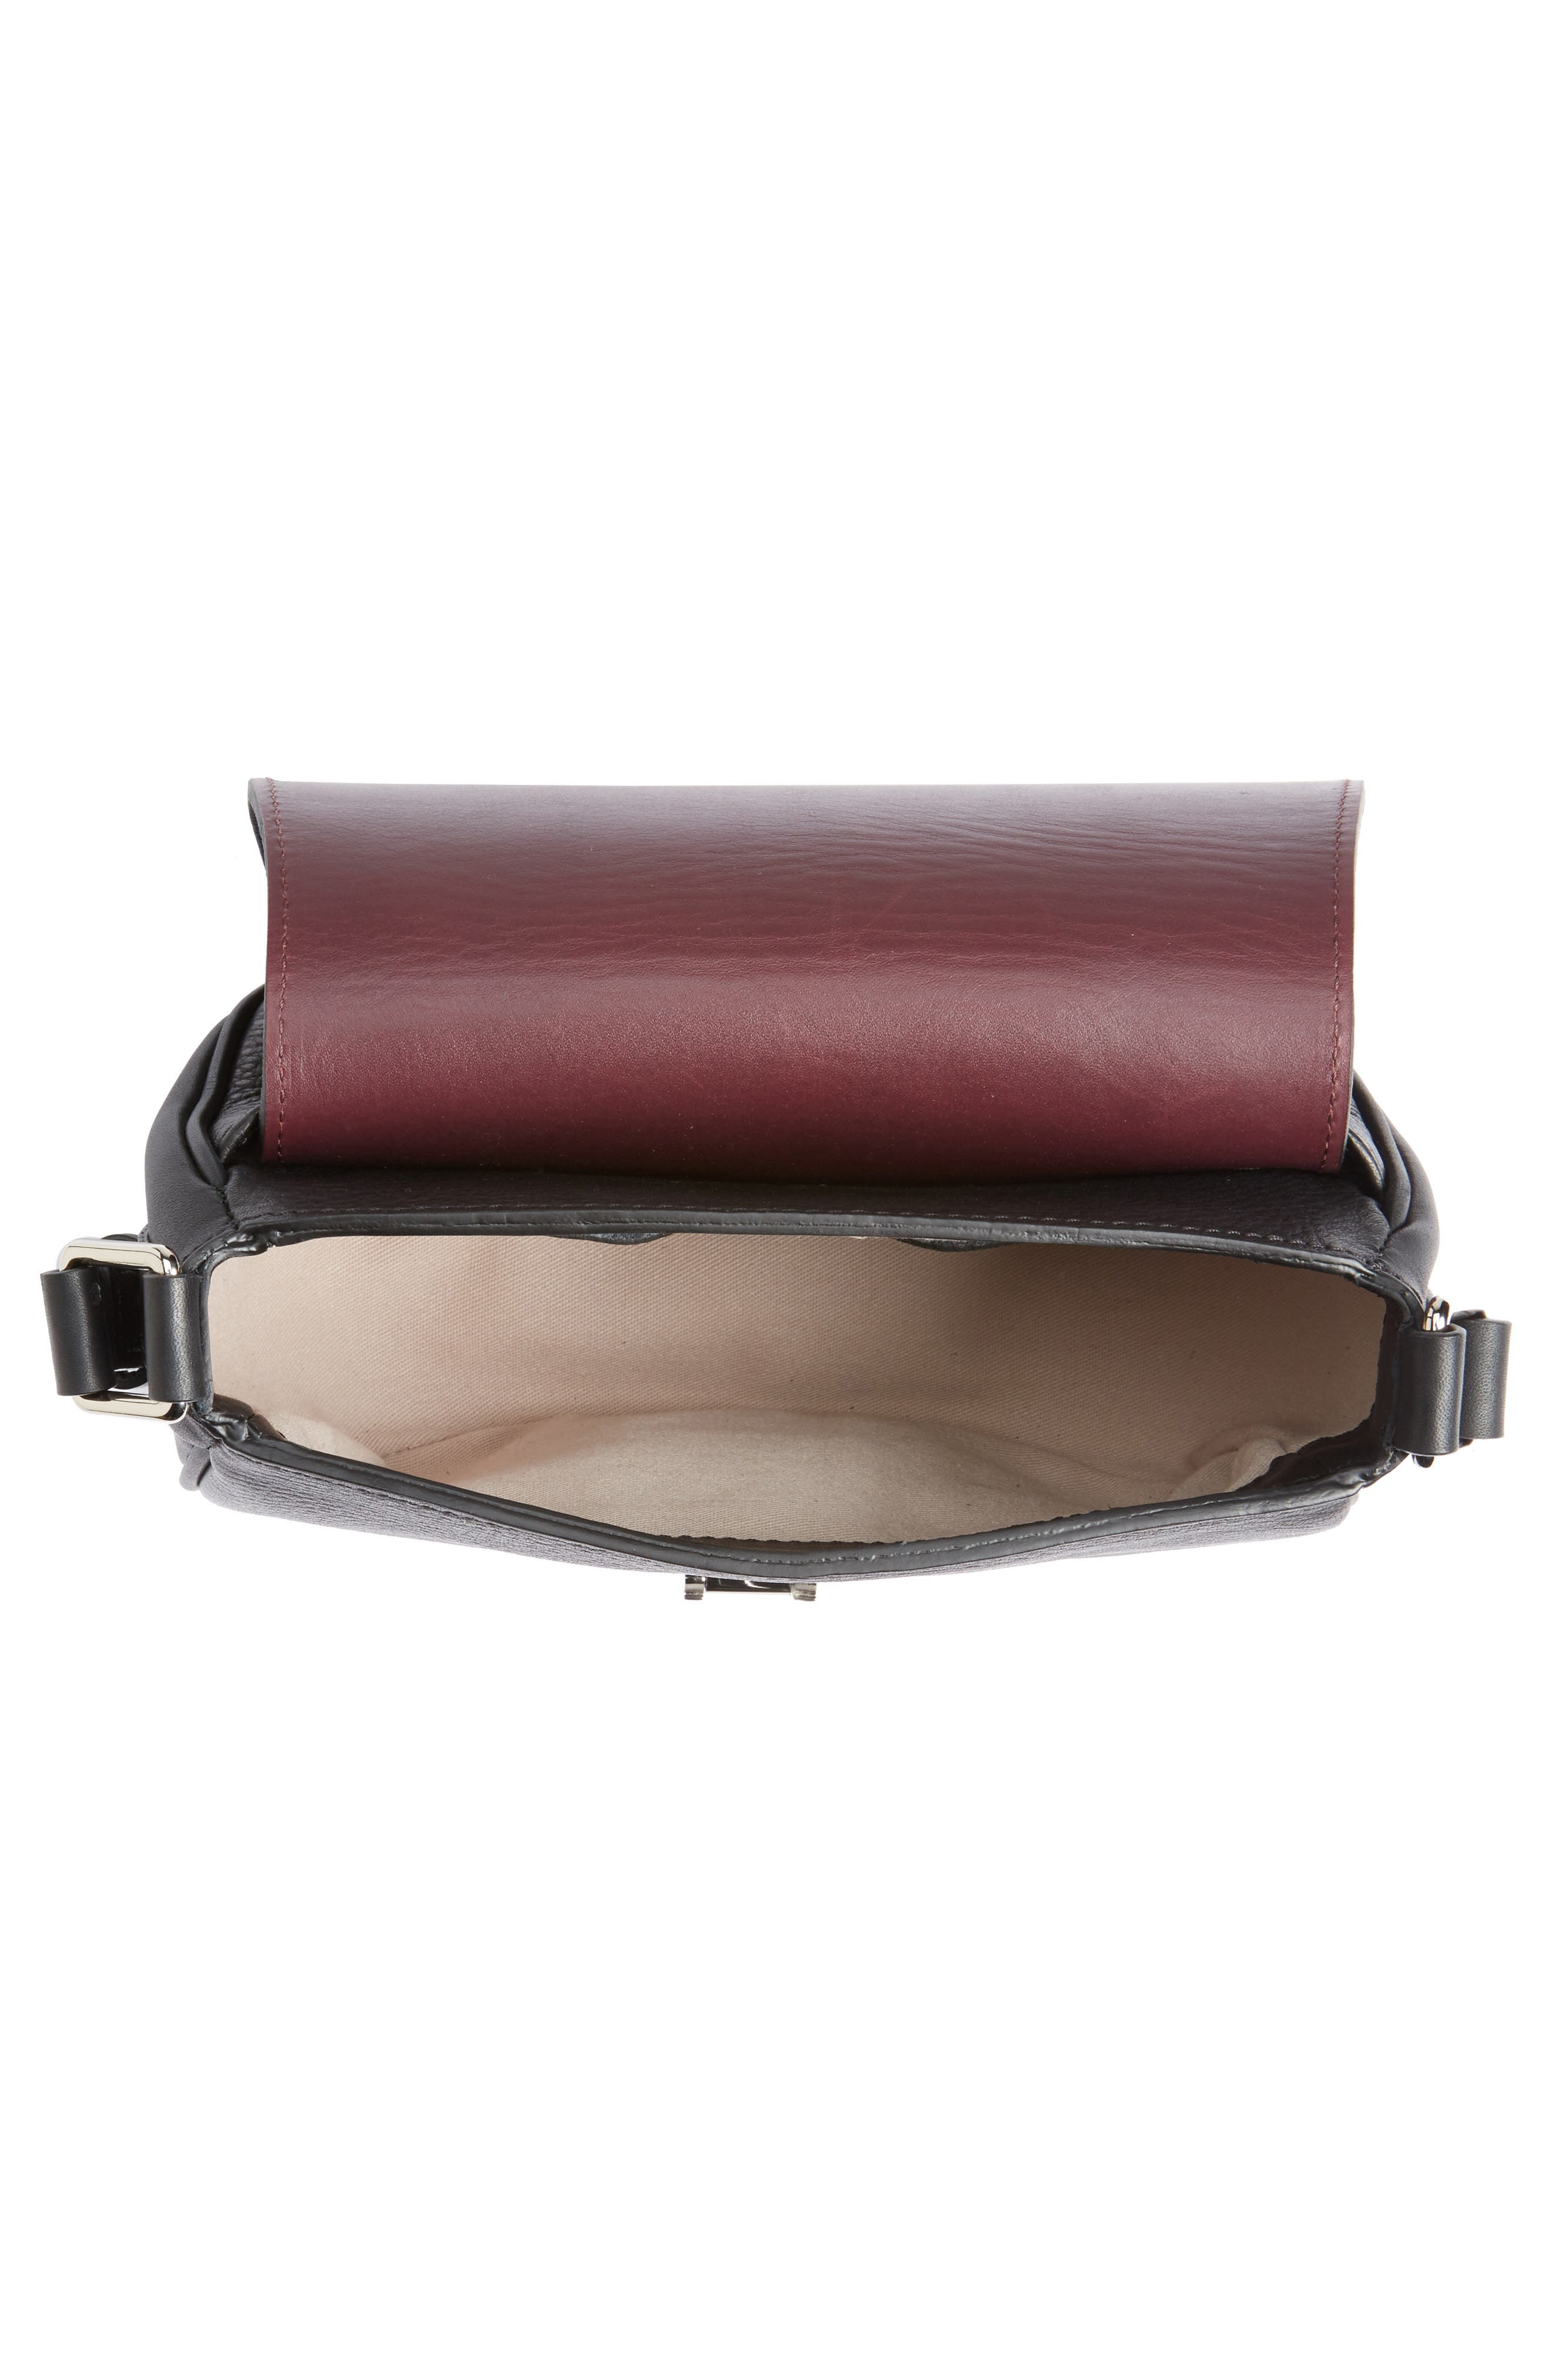 Calfskin Leather Shoulder Bag,                             Alternate thumbnail 4, color,                             001